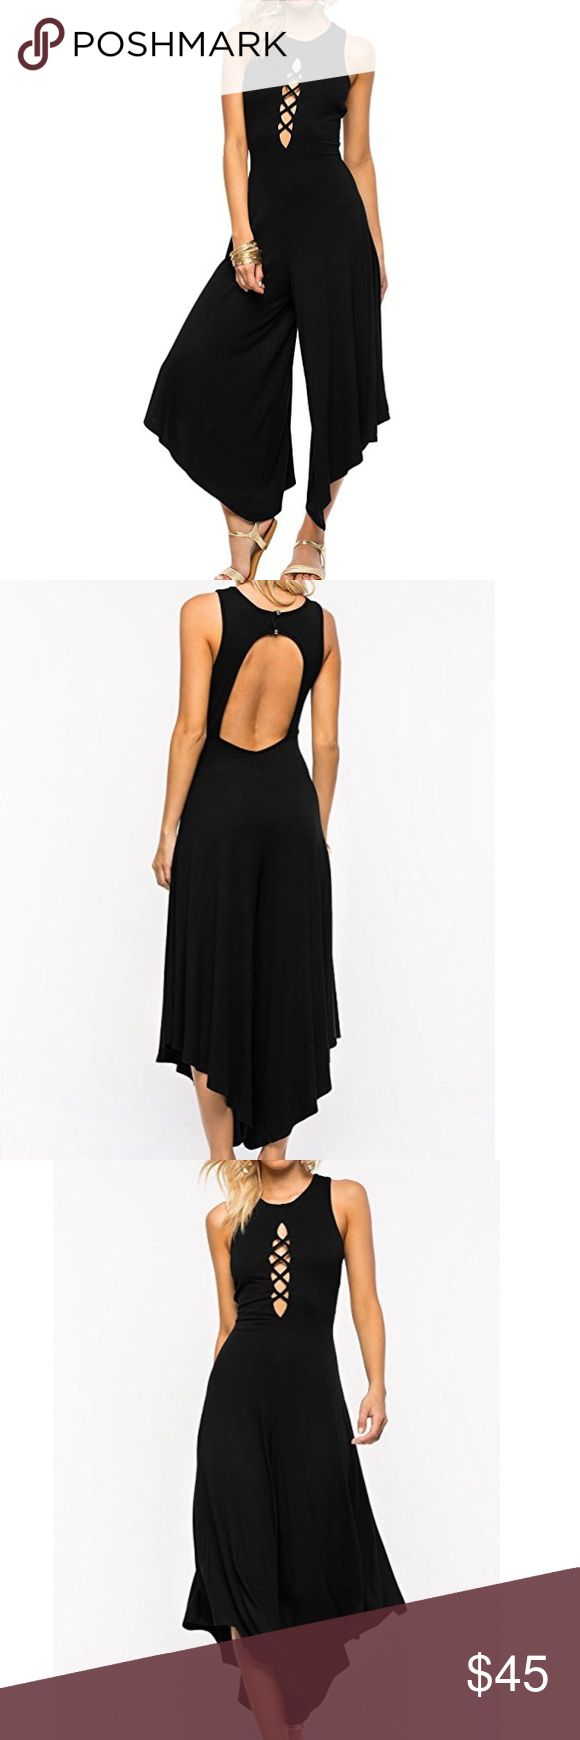 NWOT Black Lace Up Open Back Wide Leg Jumpsuit Brand new. Material is a cotton blend. Please refer to the last photo for a sizing guide to this particular dress. Pants Jumpsuits & Rompers